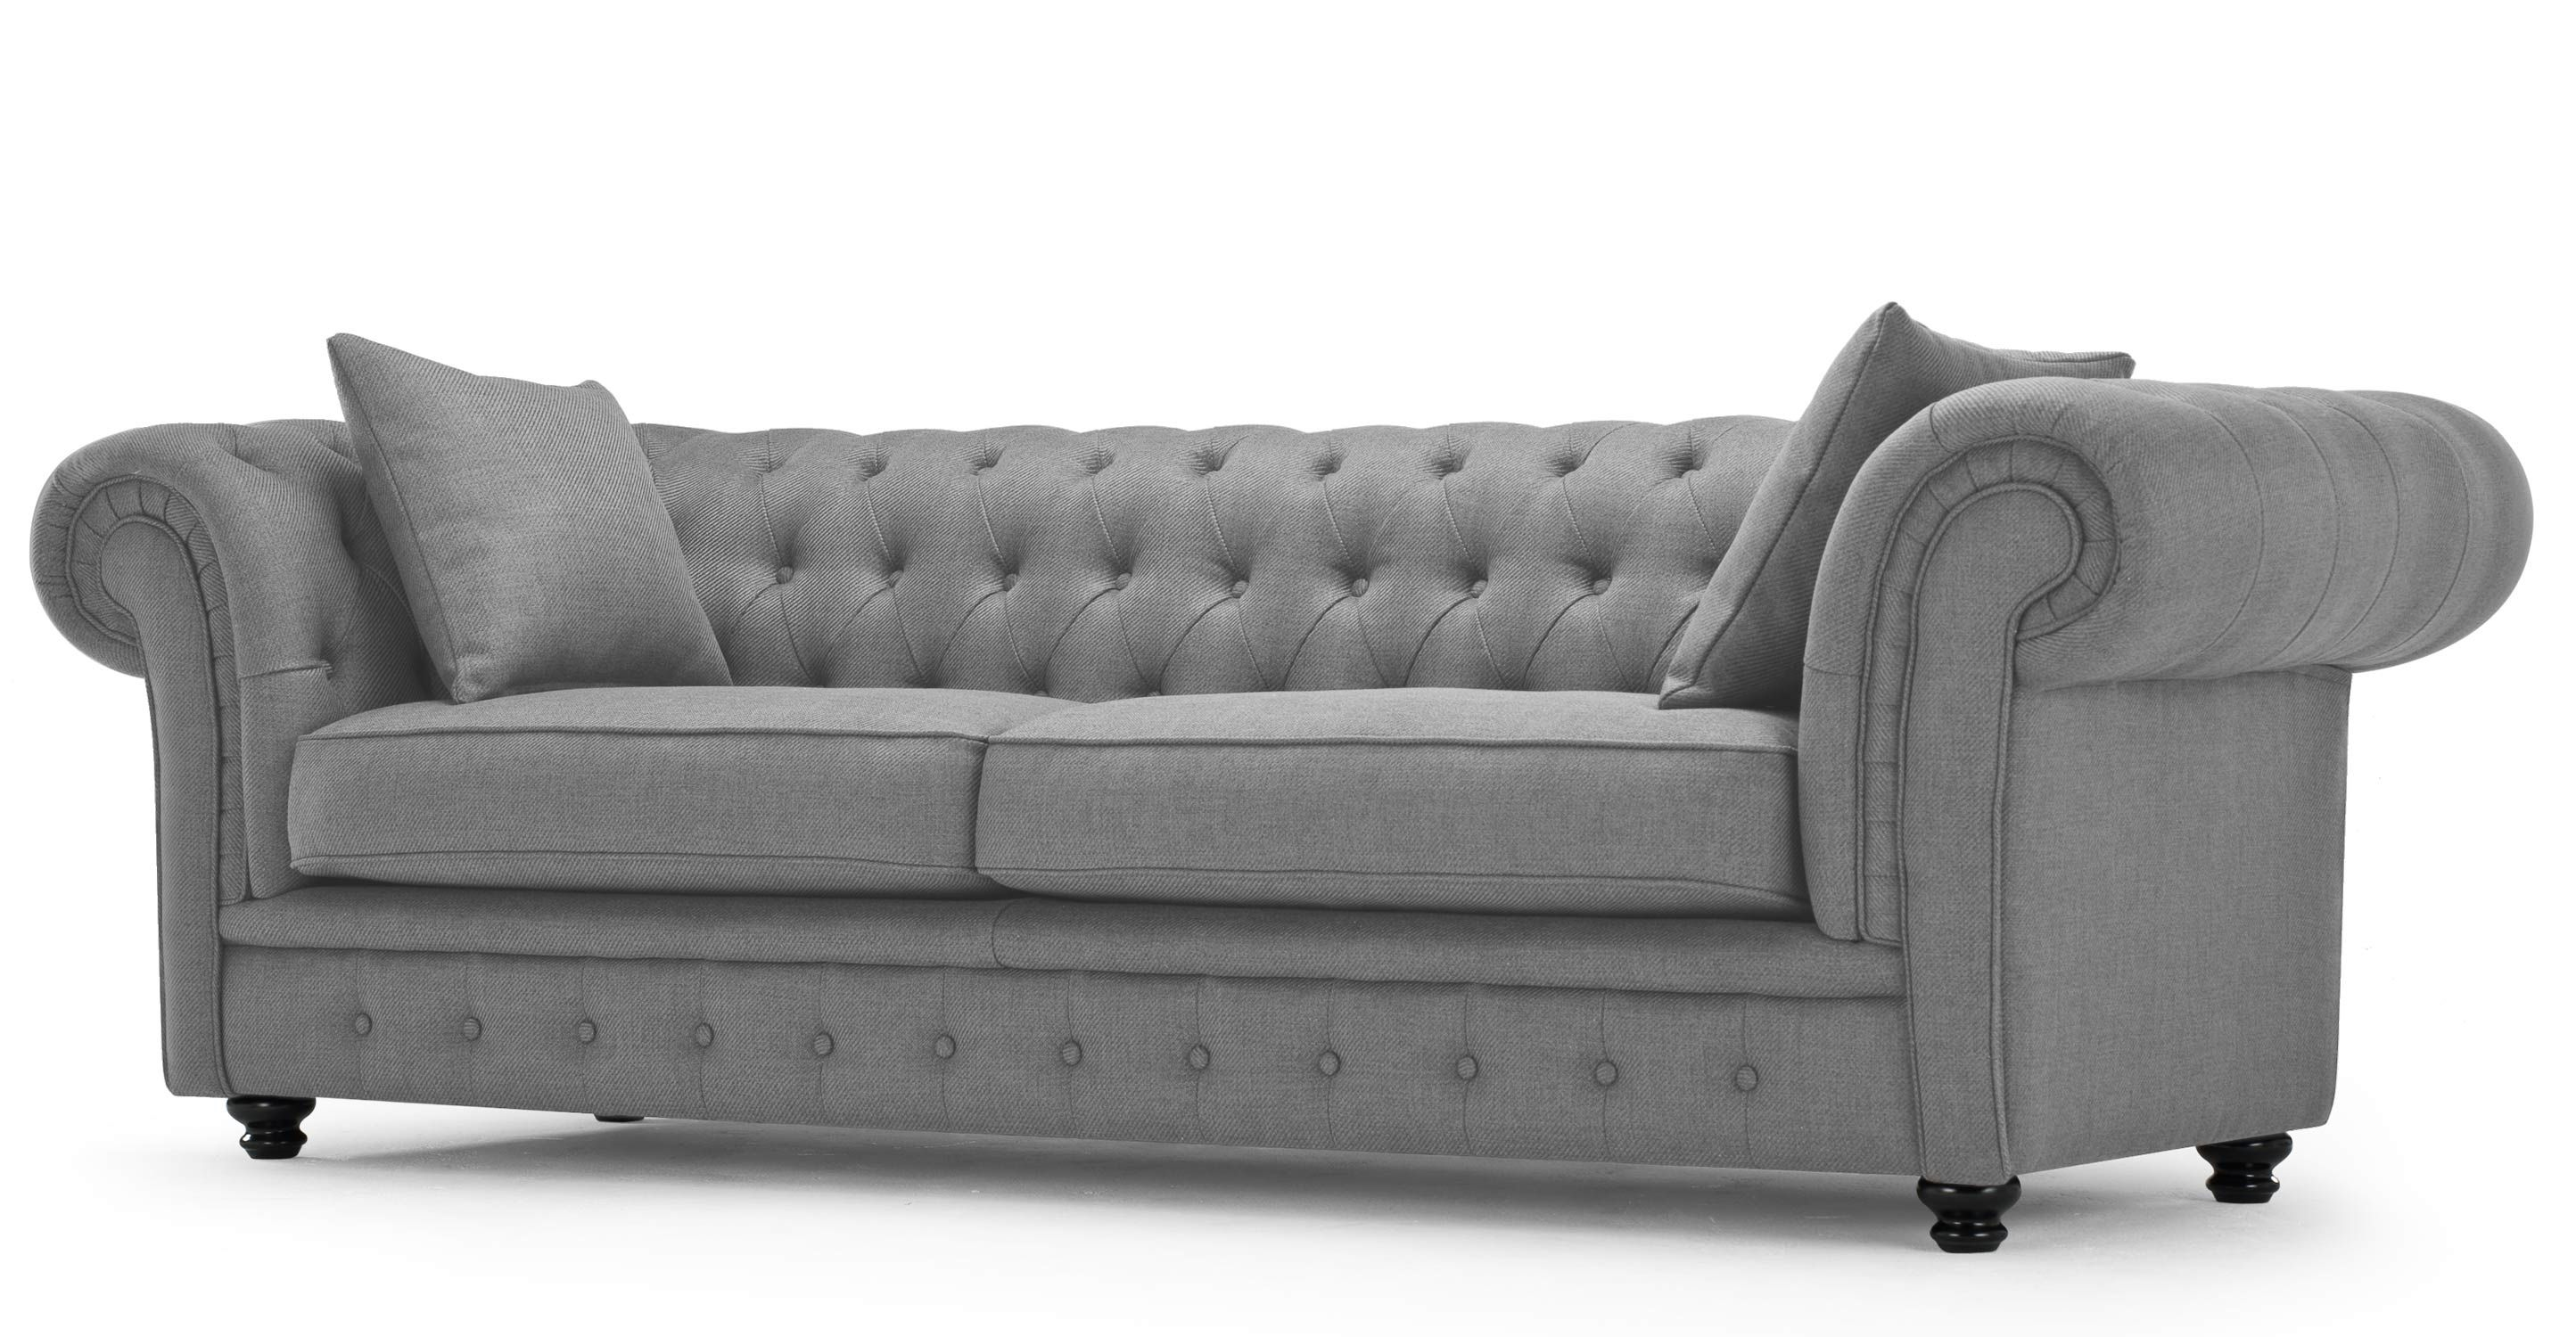 We love this but then we have a soft spot for a Chesterfield